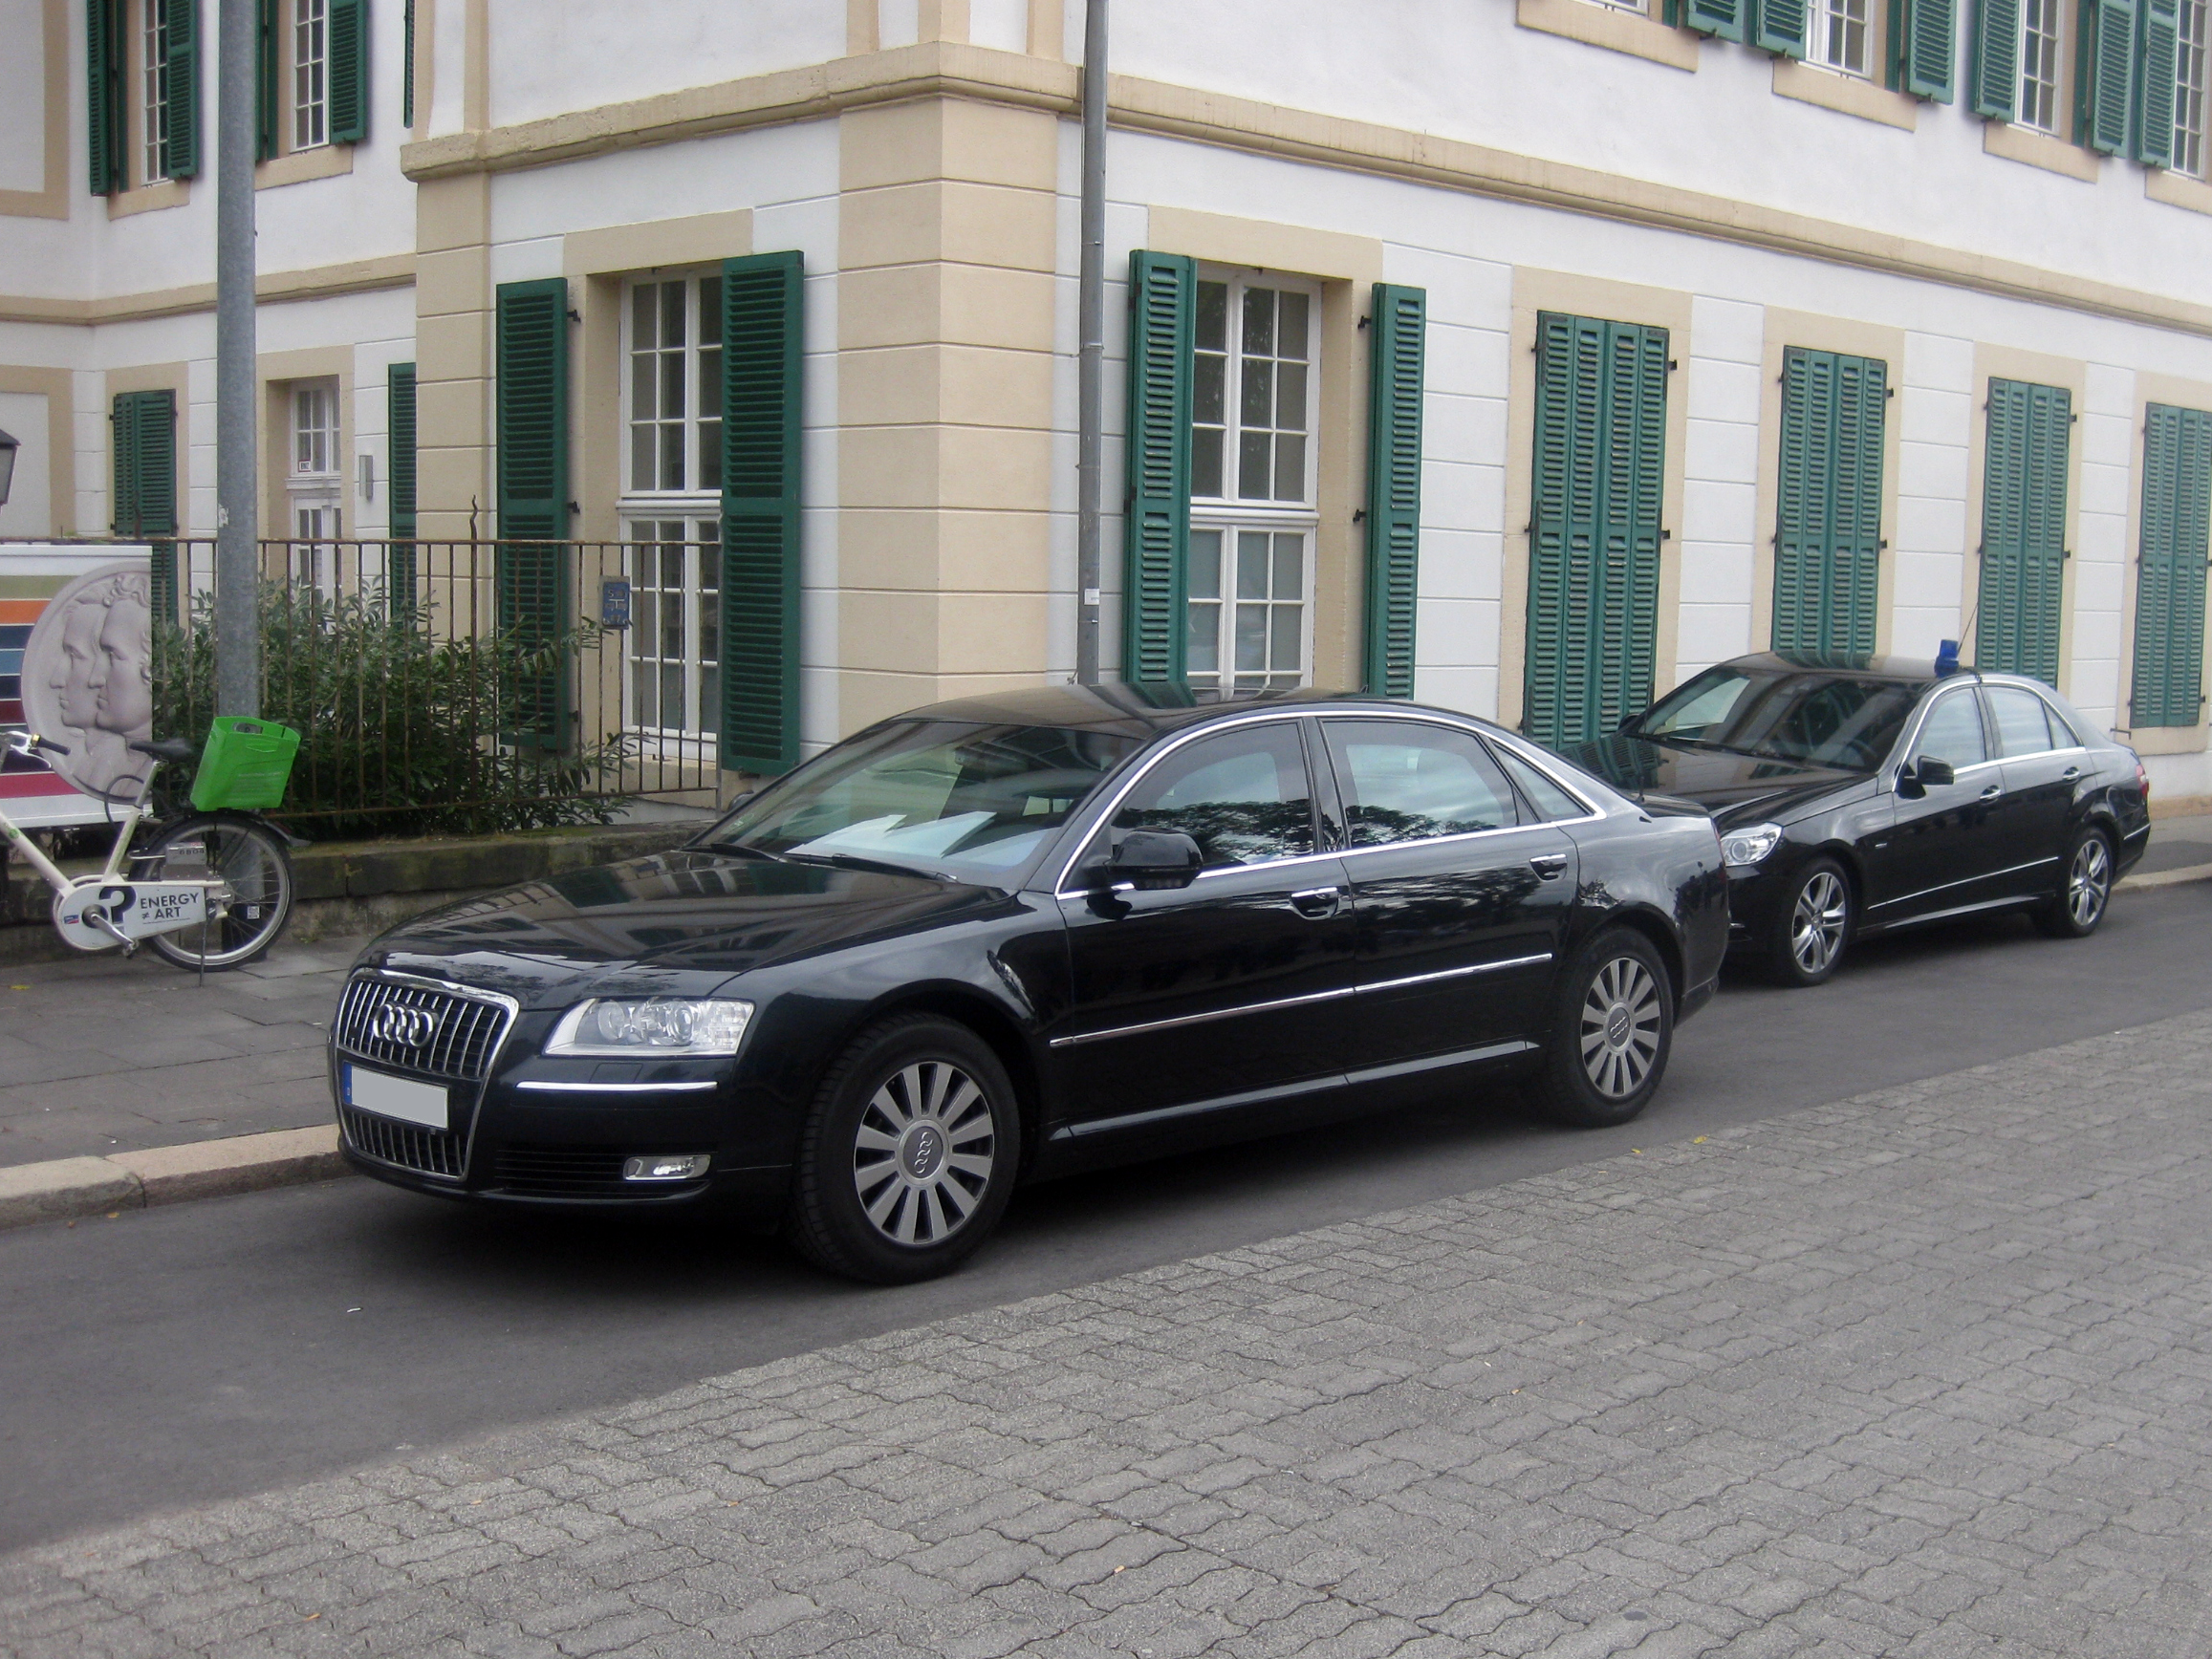 Fileaudi A8 Kasseljpg Wikimedia Commons